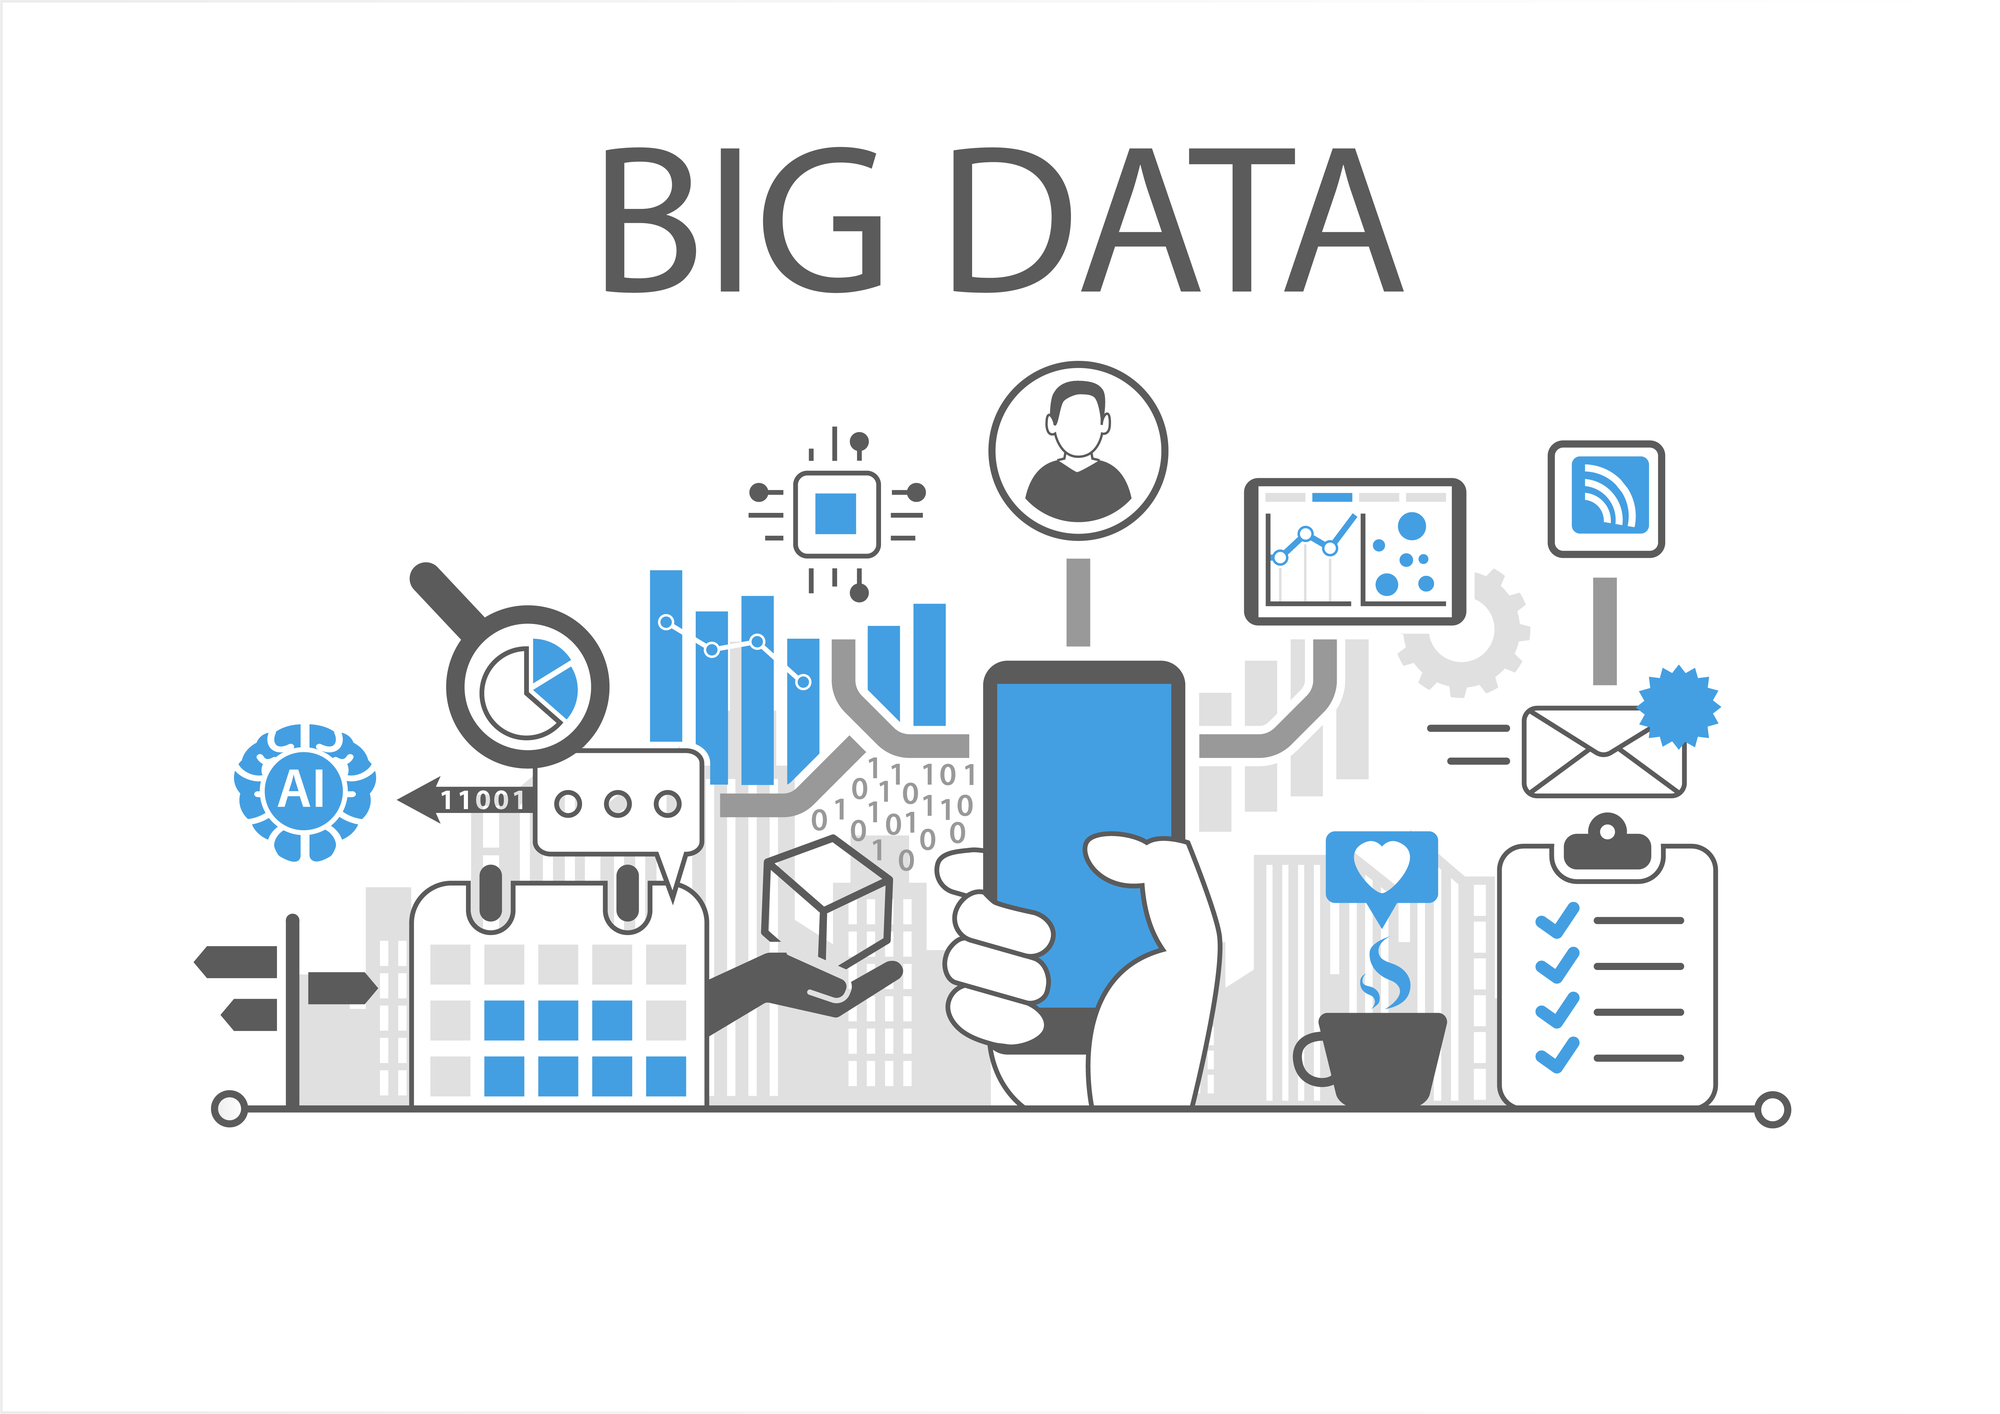 big data log management and analysis